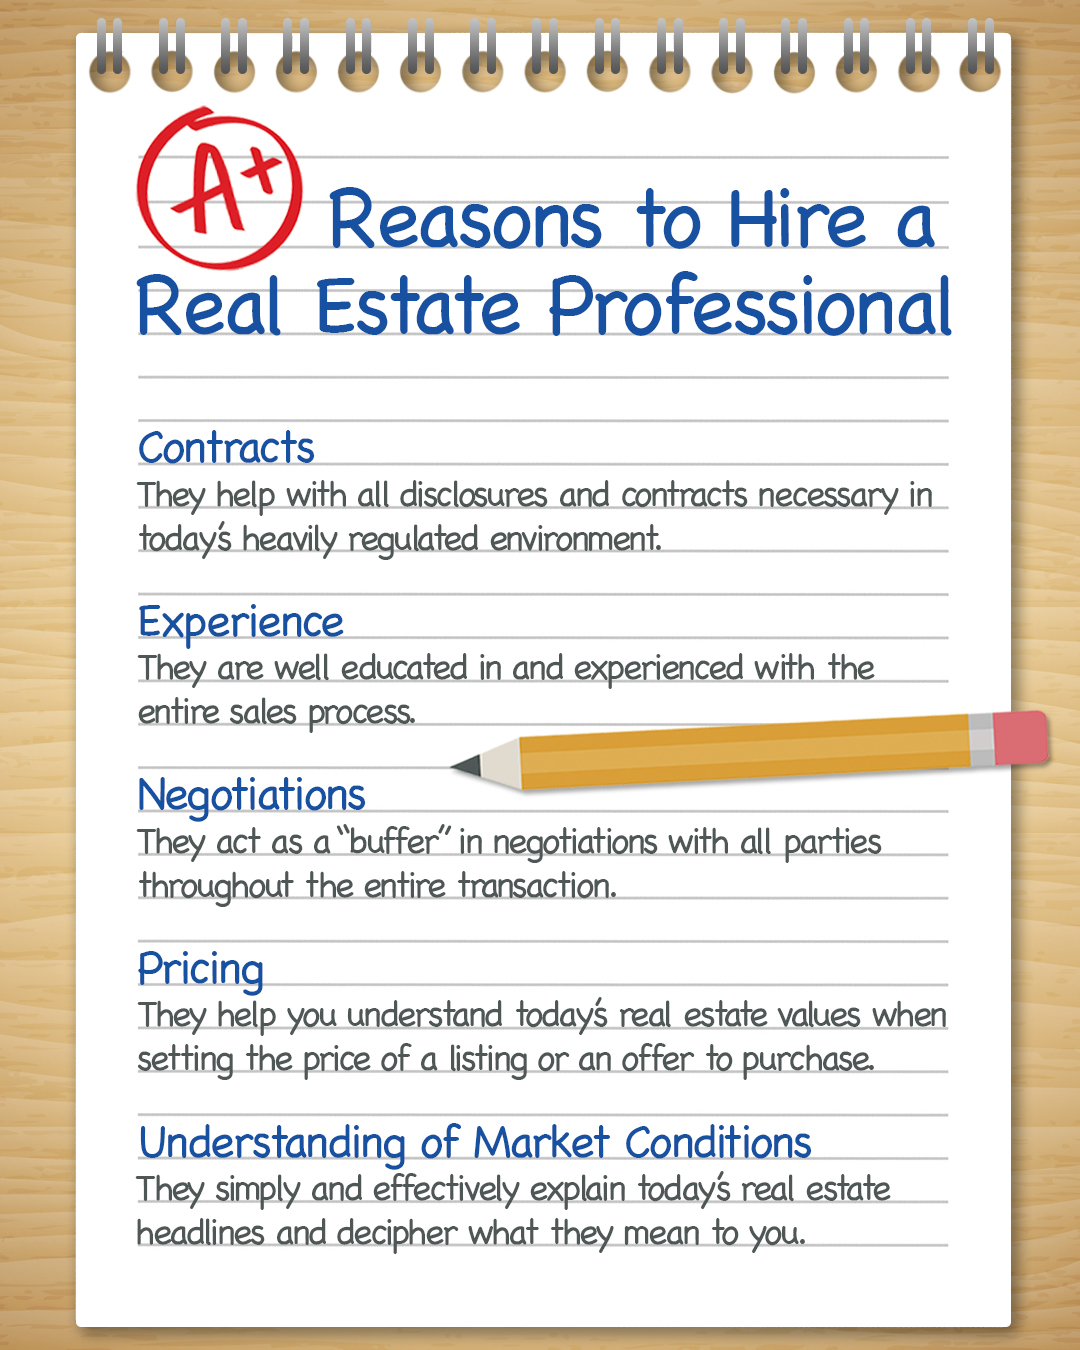 A+ Reasons to Hire a Real Estate Pro [INFOGRAPHIC] | Simplifying The Market